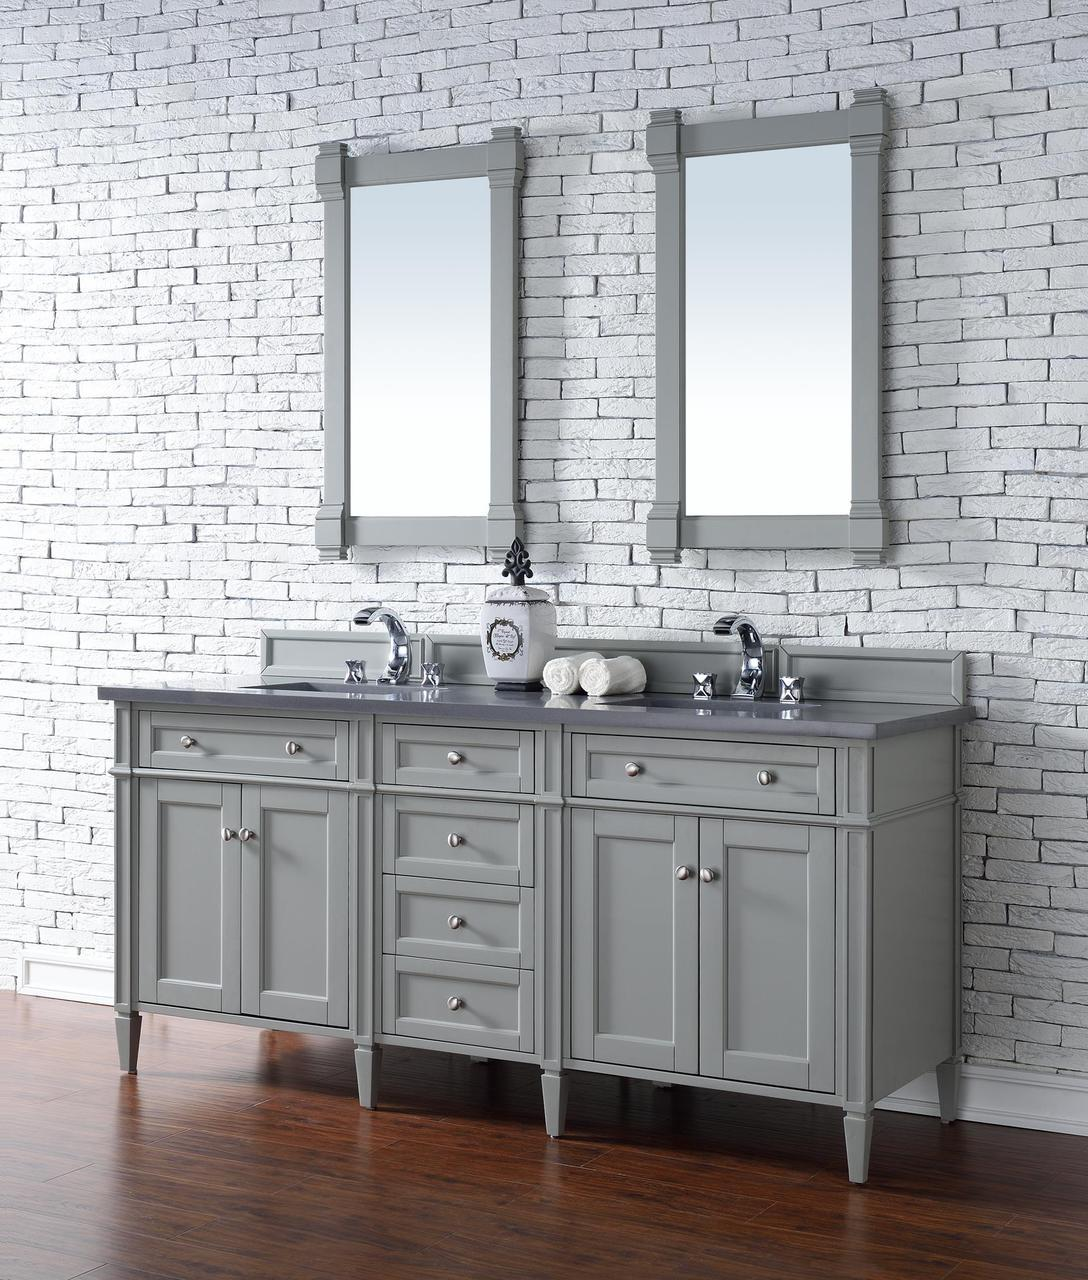 James martin brittany collection 72 double vanity urban gray for Bathroom cabinets 72 inches